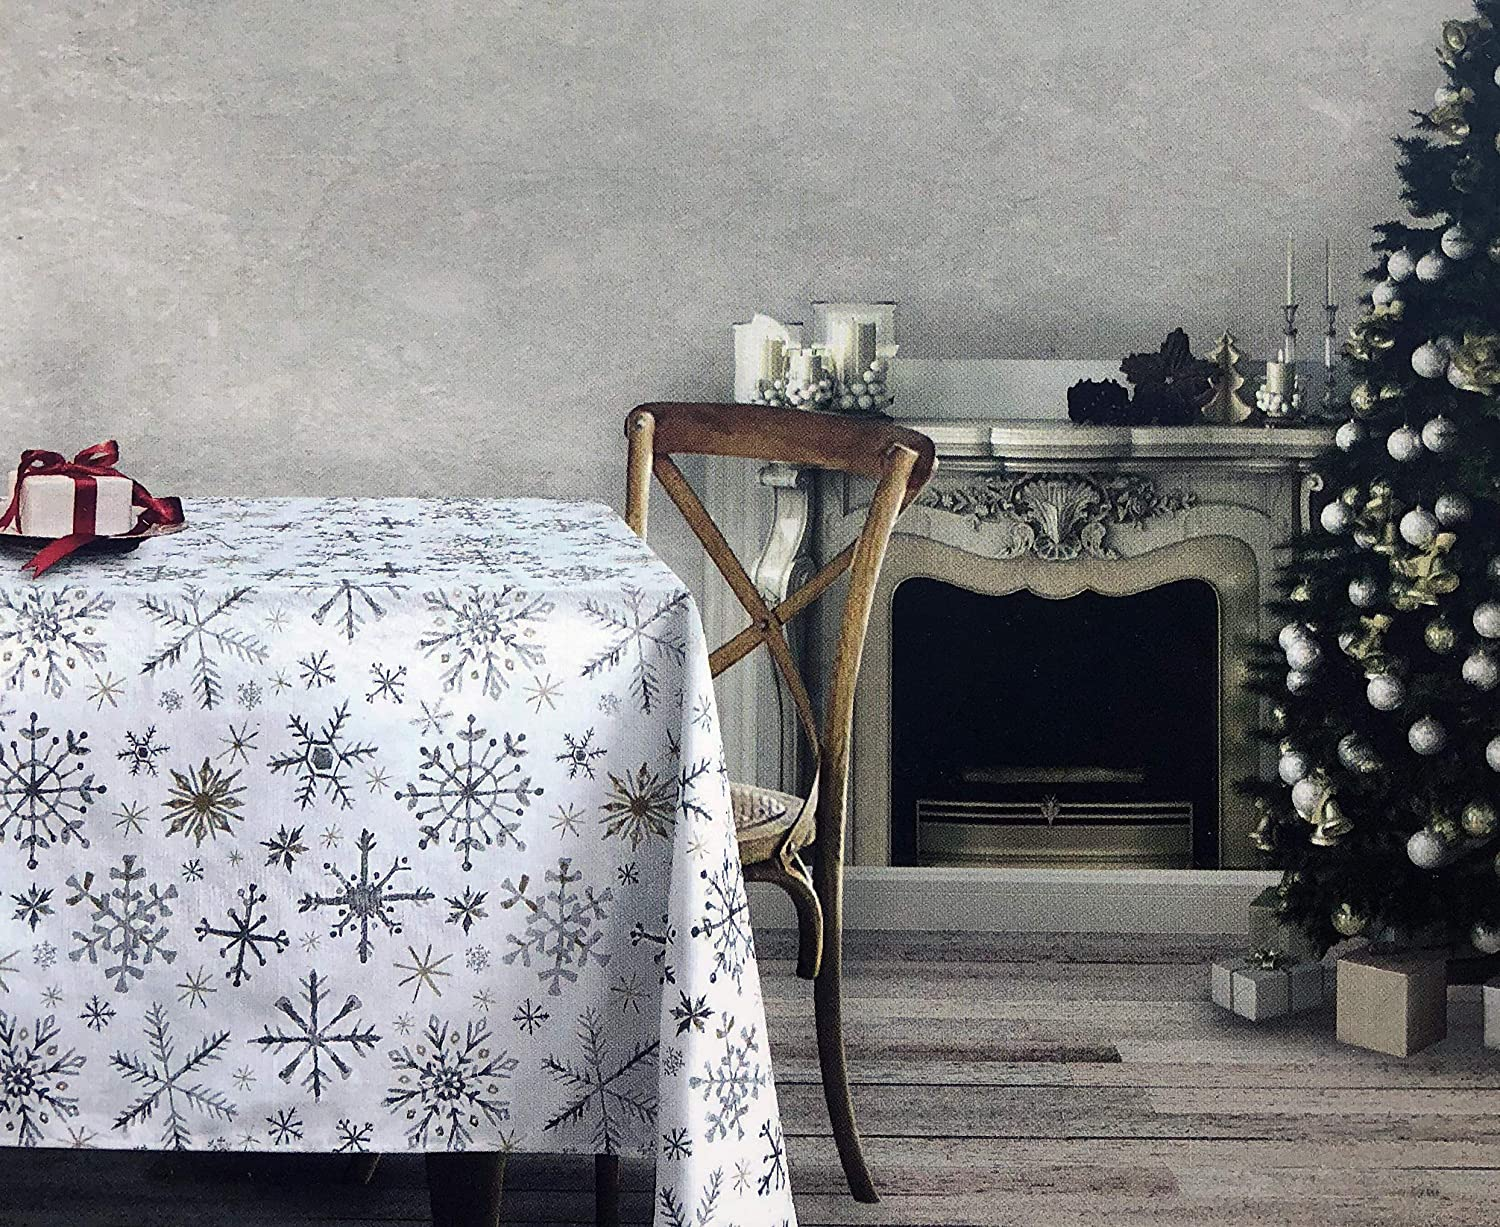 Dash Away Home Fabric Cotton Christmas Holiday Tablecloth Snowflakes in Shades Gray Silver Beige Tan on White 60 Inches x 120 Inches